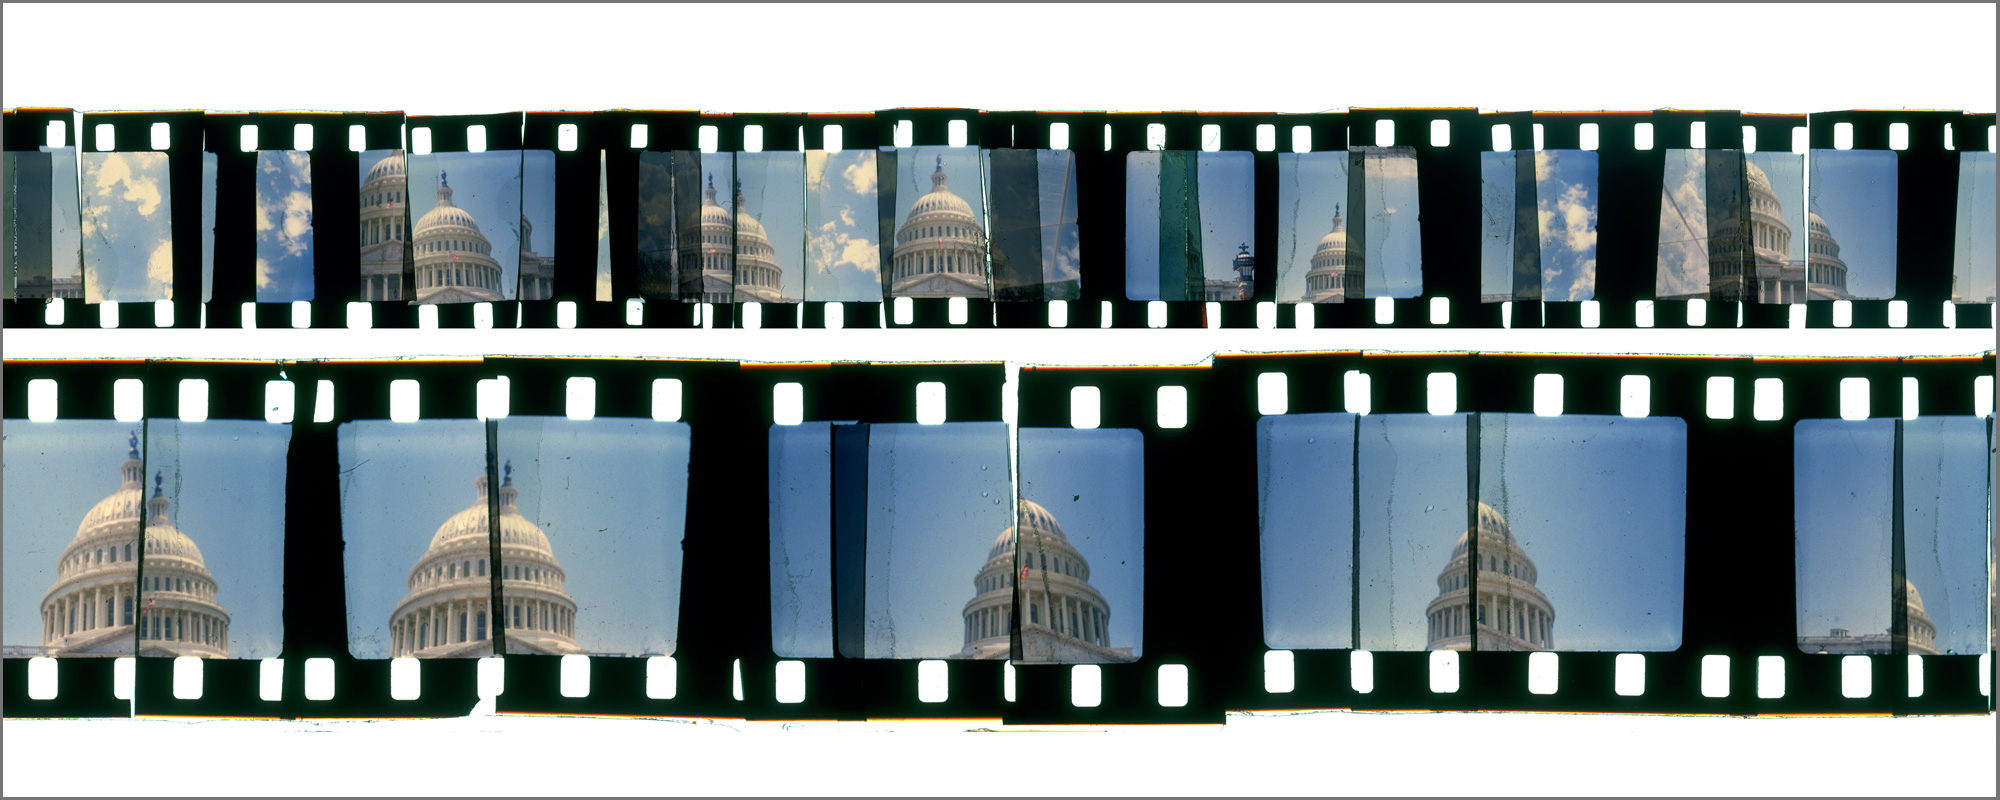 """WASHINGTON CUTUP 1  , ACRYLIC MOUNTED PRINT FROM 16MM TRANSPARENCY FILM COMPOSITION, 20"""" x 50"""", EDITION OF 5"""